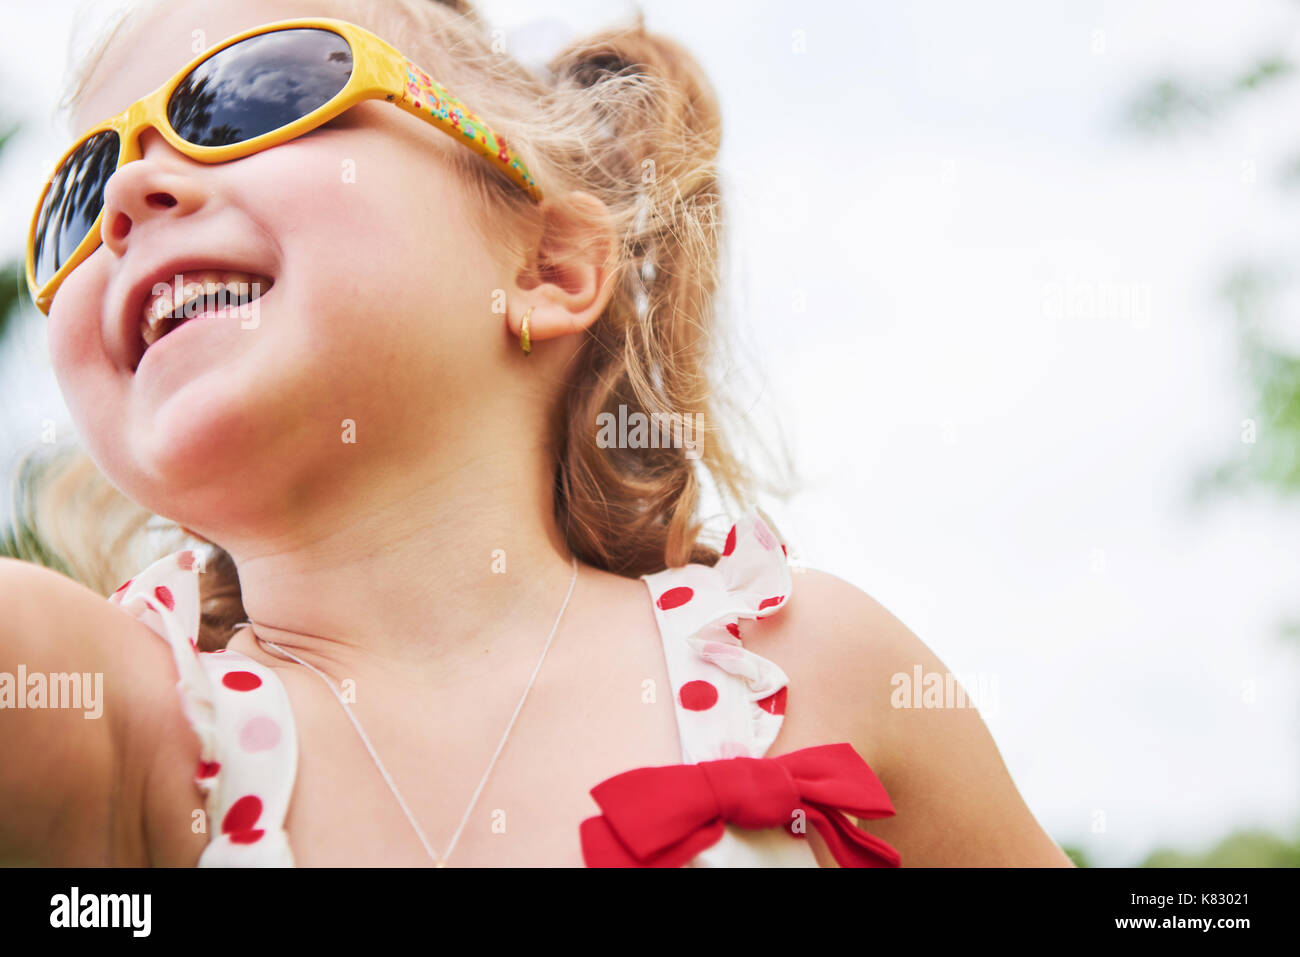 happy baby girl in a summer sunglasses - Stock Image